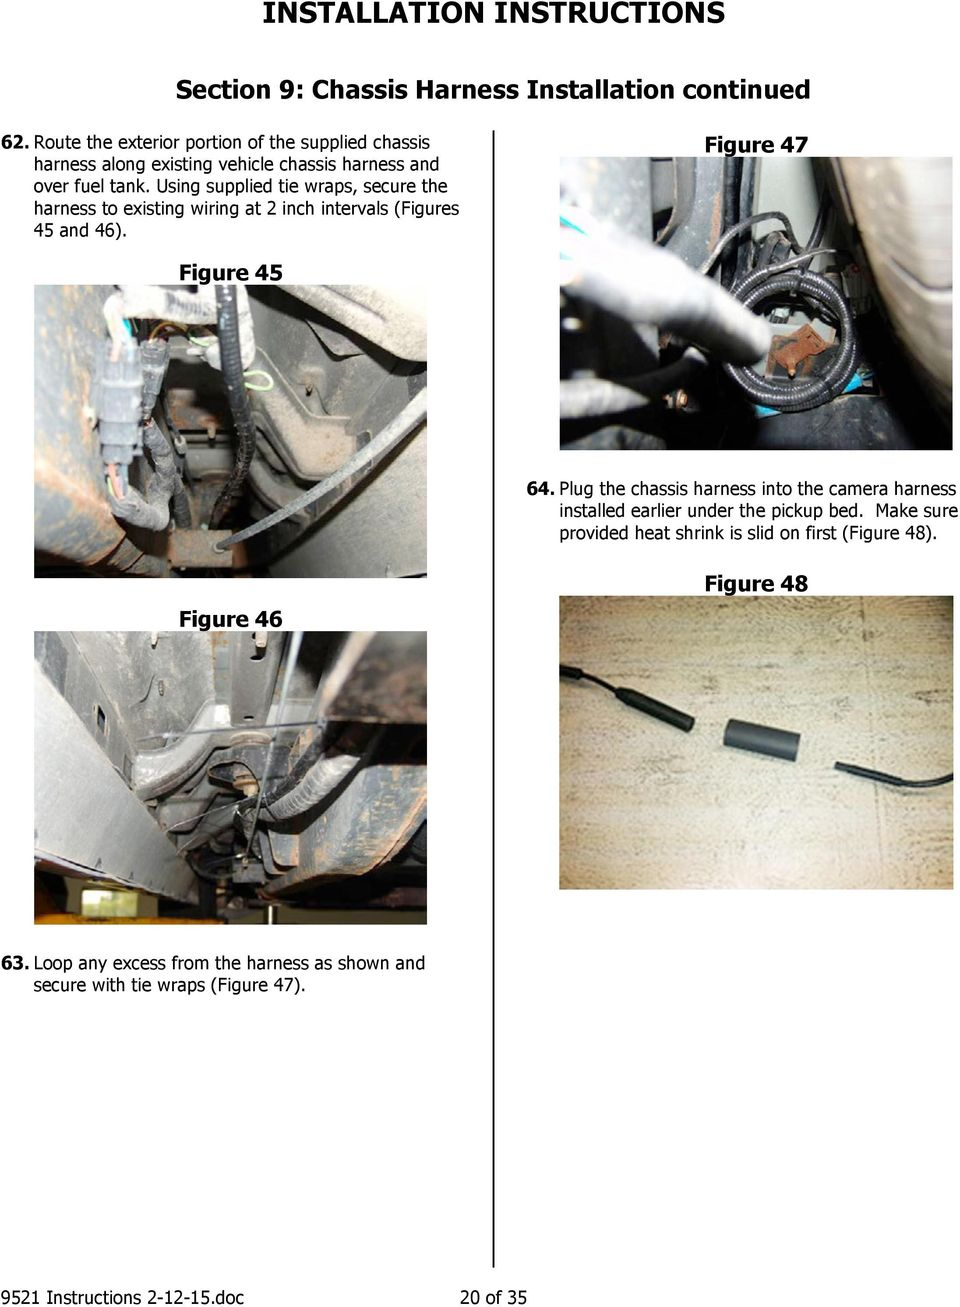 Installation Instructions Pdf Loop Wire Harness Using Supplied Tie Wraps Secure The To Existing Wiring At 2 Inch Intervals